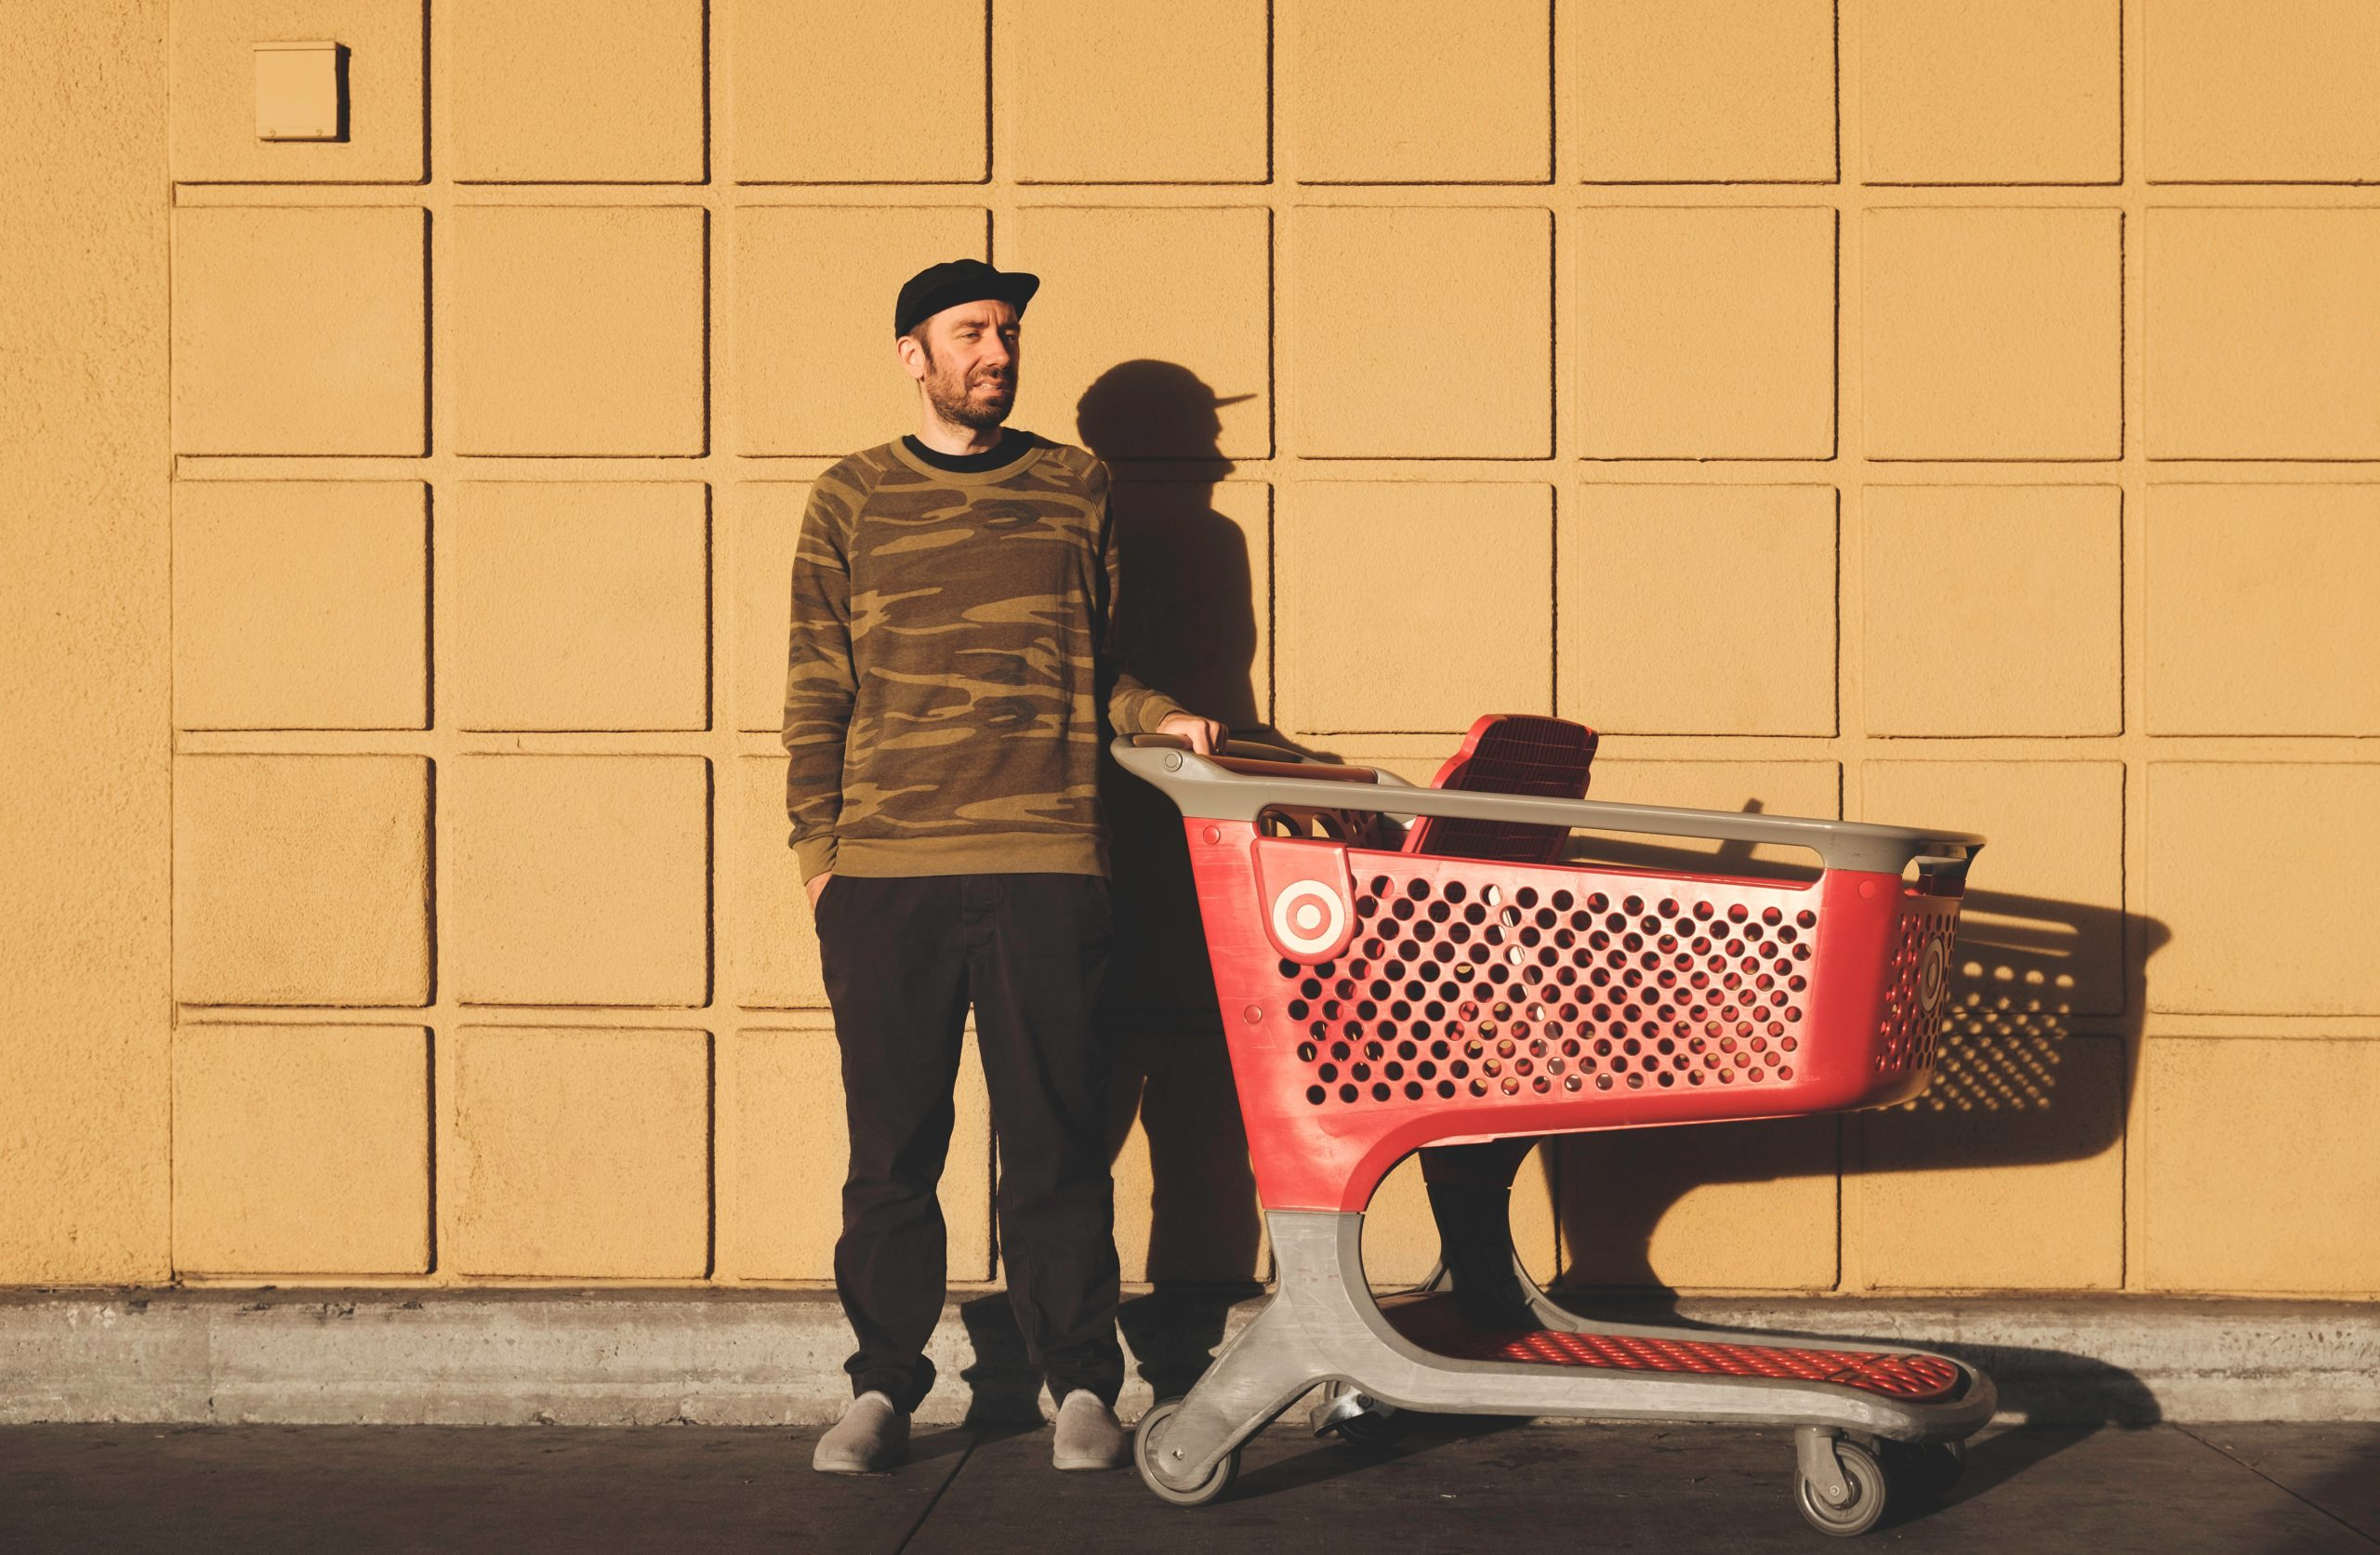 It makes the most sense to have a shopping cart when going shopping.